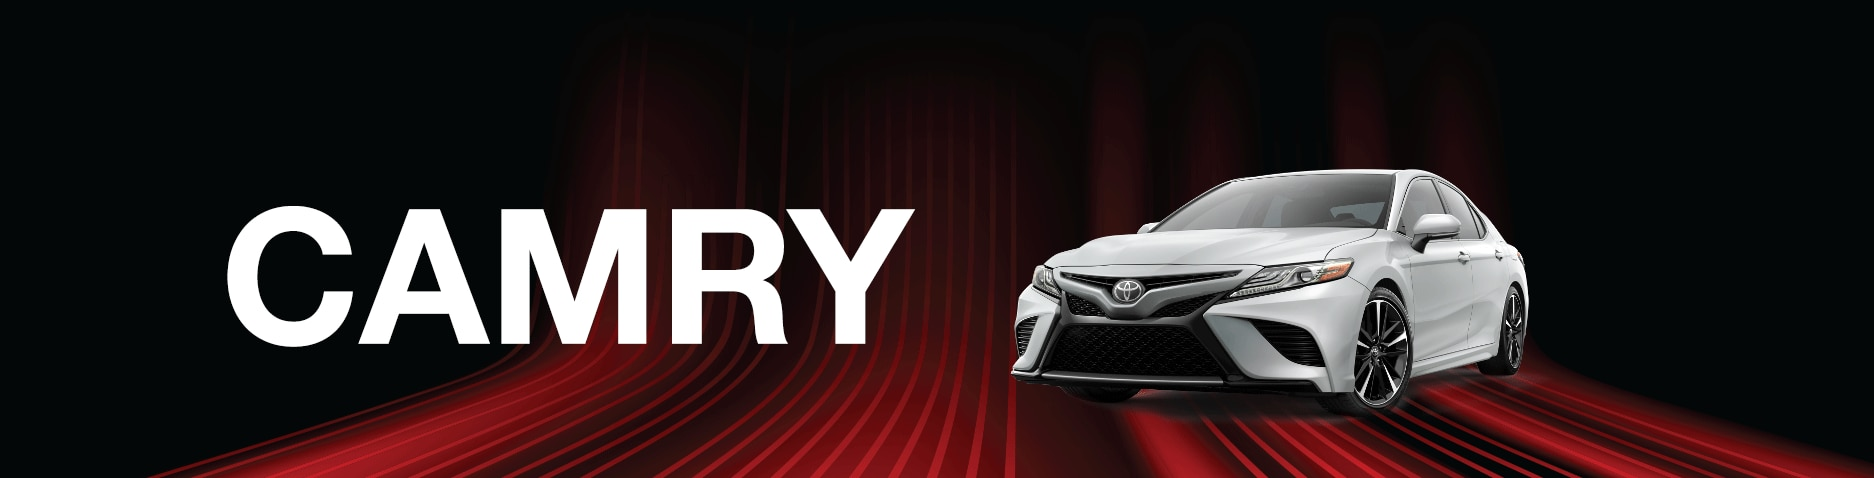 2019 Toyota Camry Review and Comparison in Albuquerque, NM